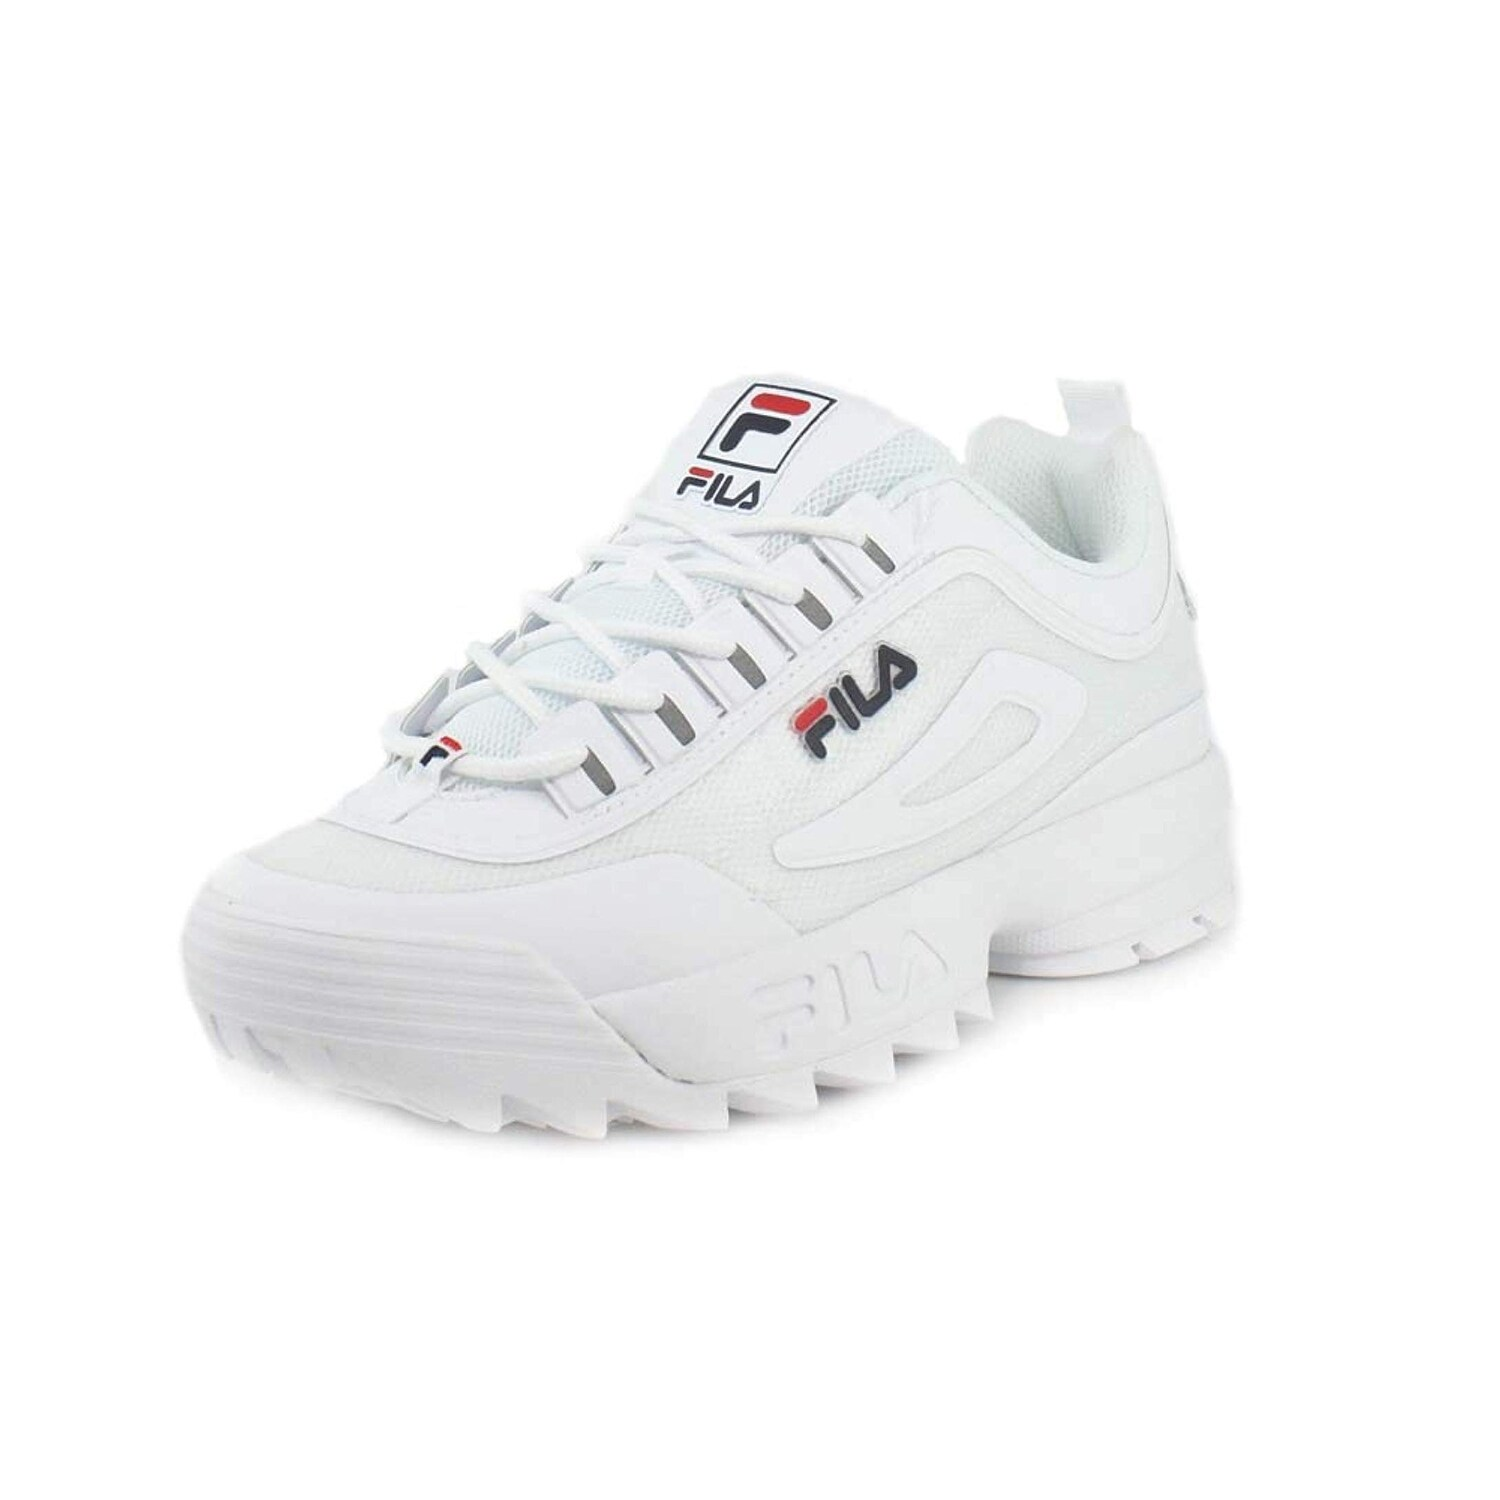 Fila Men's Disruptor Ii Premium Red White Navy Ankle High Patent Leather Sneaker 10M